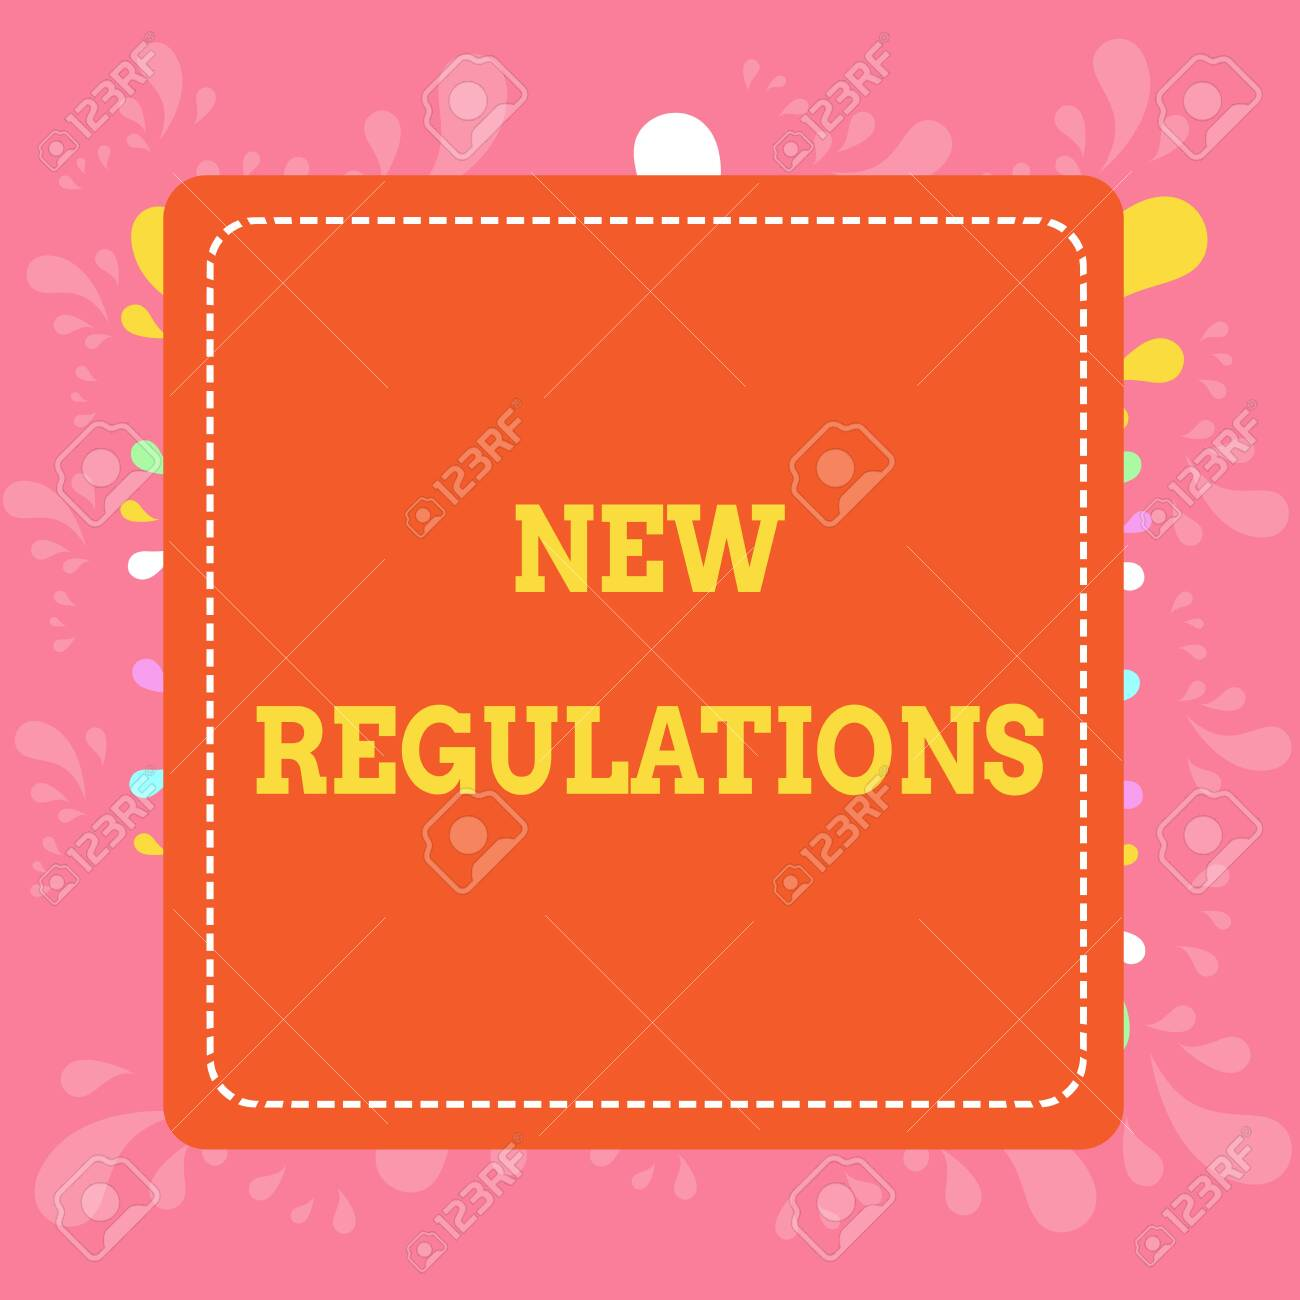 Writing note showing New Regulations. Business concept for Regulation controlling the activity usually used by rules. Dashed Stipple Line Blank Square Colored Cutout Frame Bright Background - 124656351